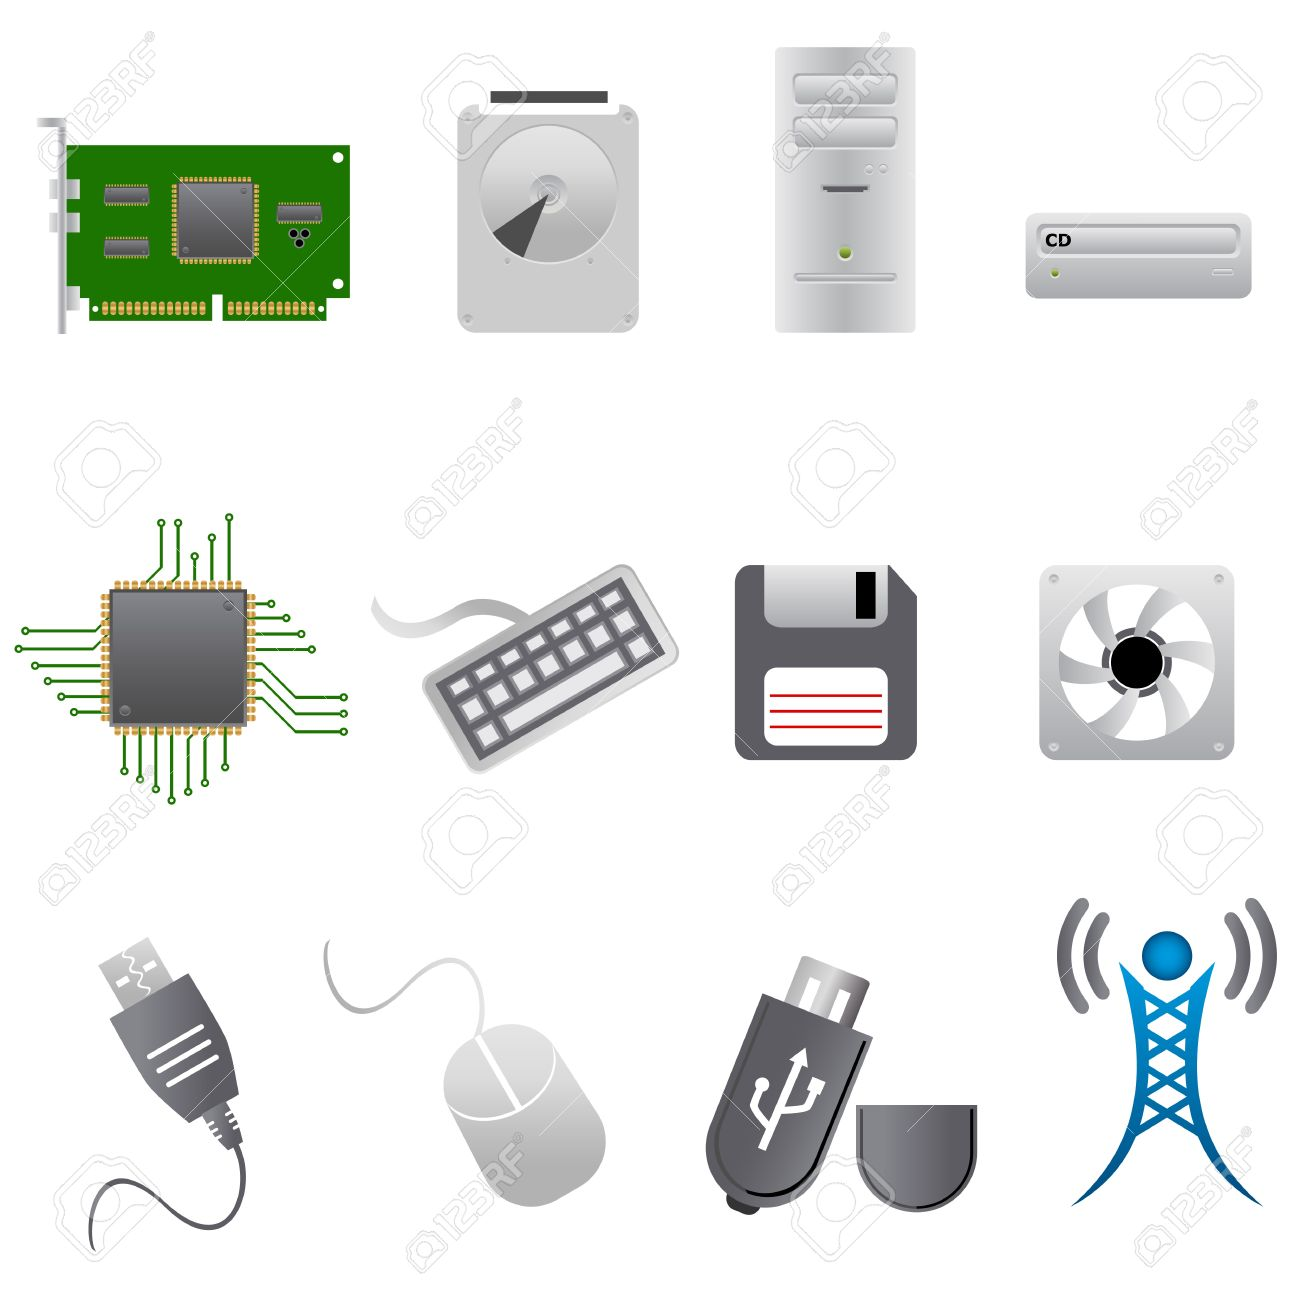 Computer Peripherals Clipart 20 Free Cliparts